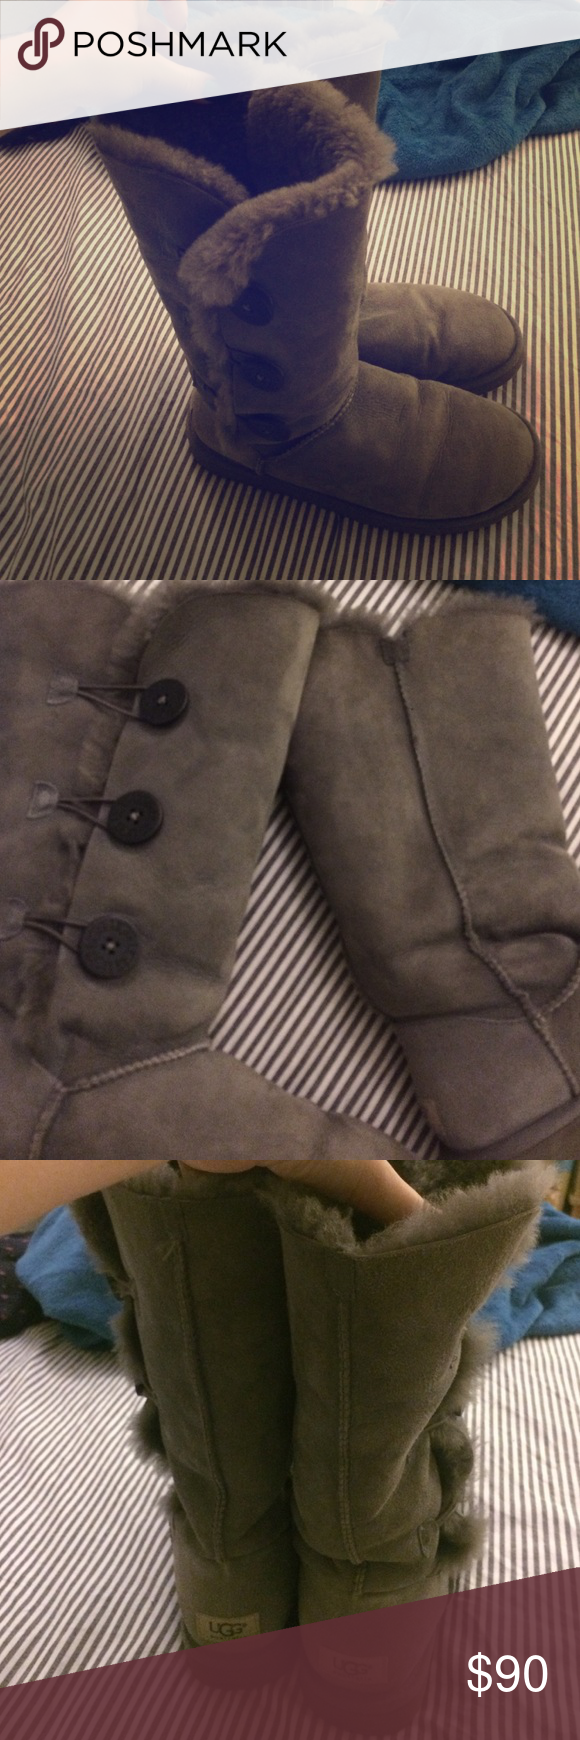 Gray tall UGH boots In great condition. No water marks and no scuffs or wear on heel. Had them for a while but barely worn them. Says US 9, EU 40 on inside tag. UGG Shoes